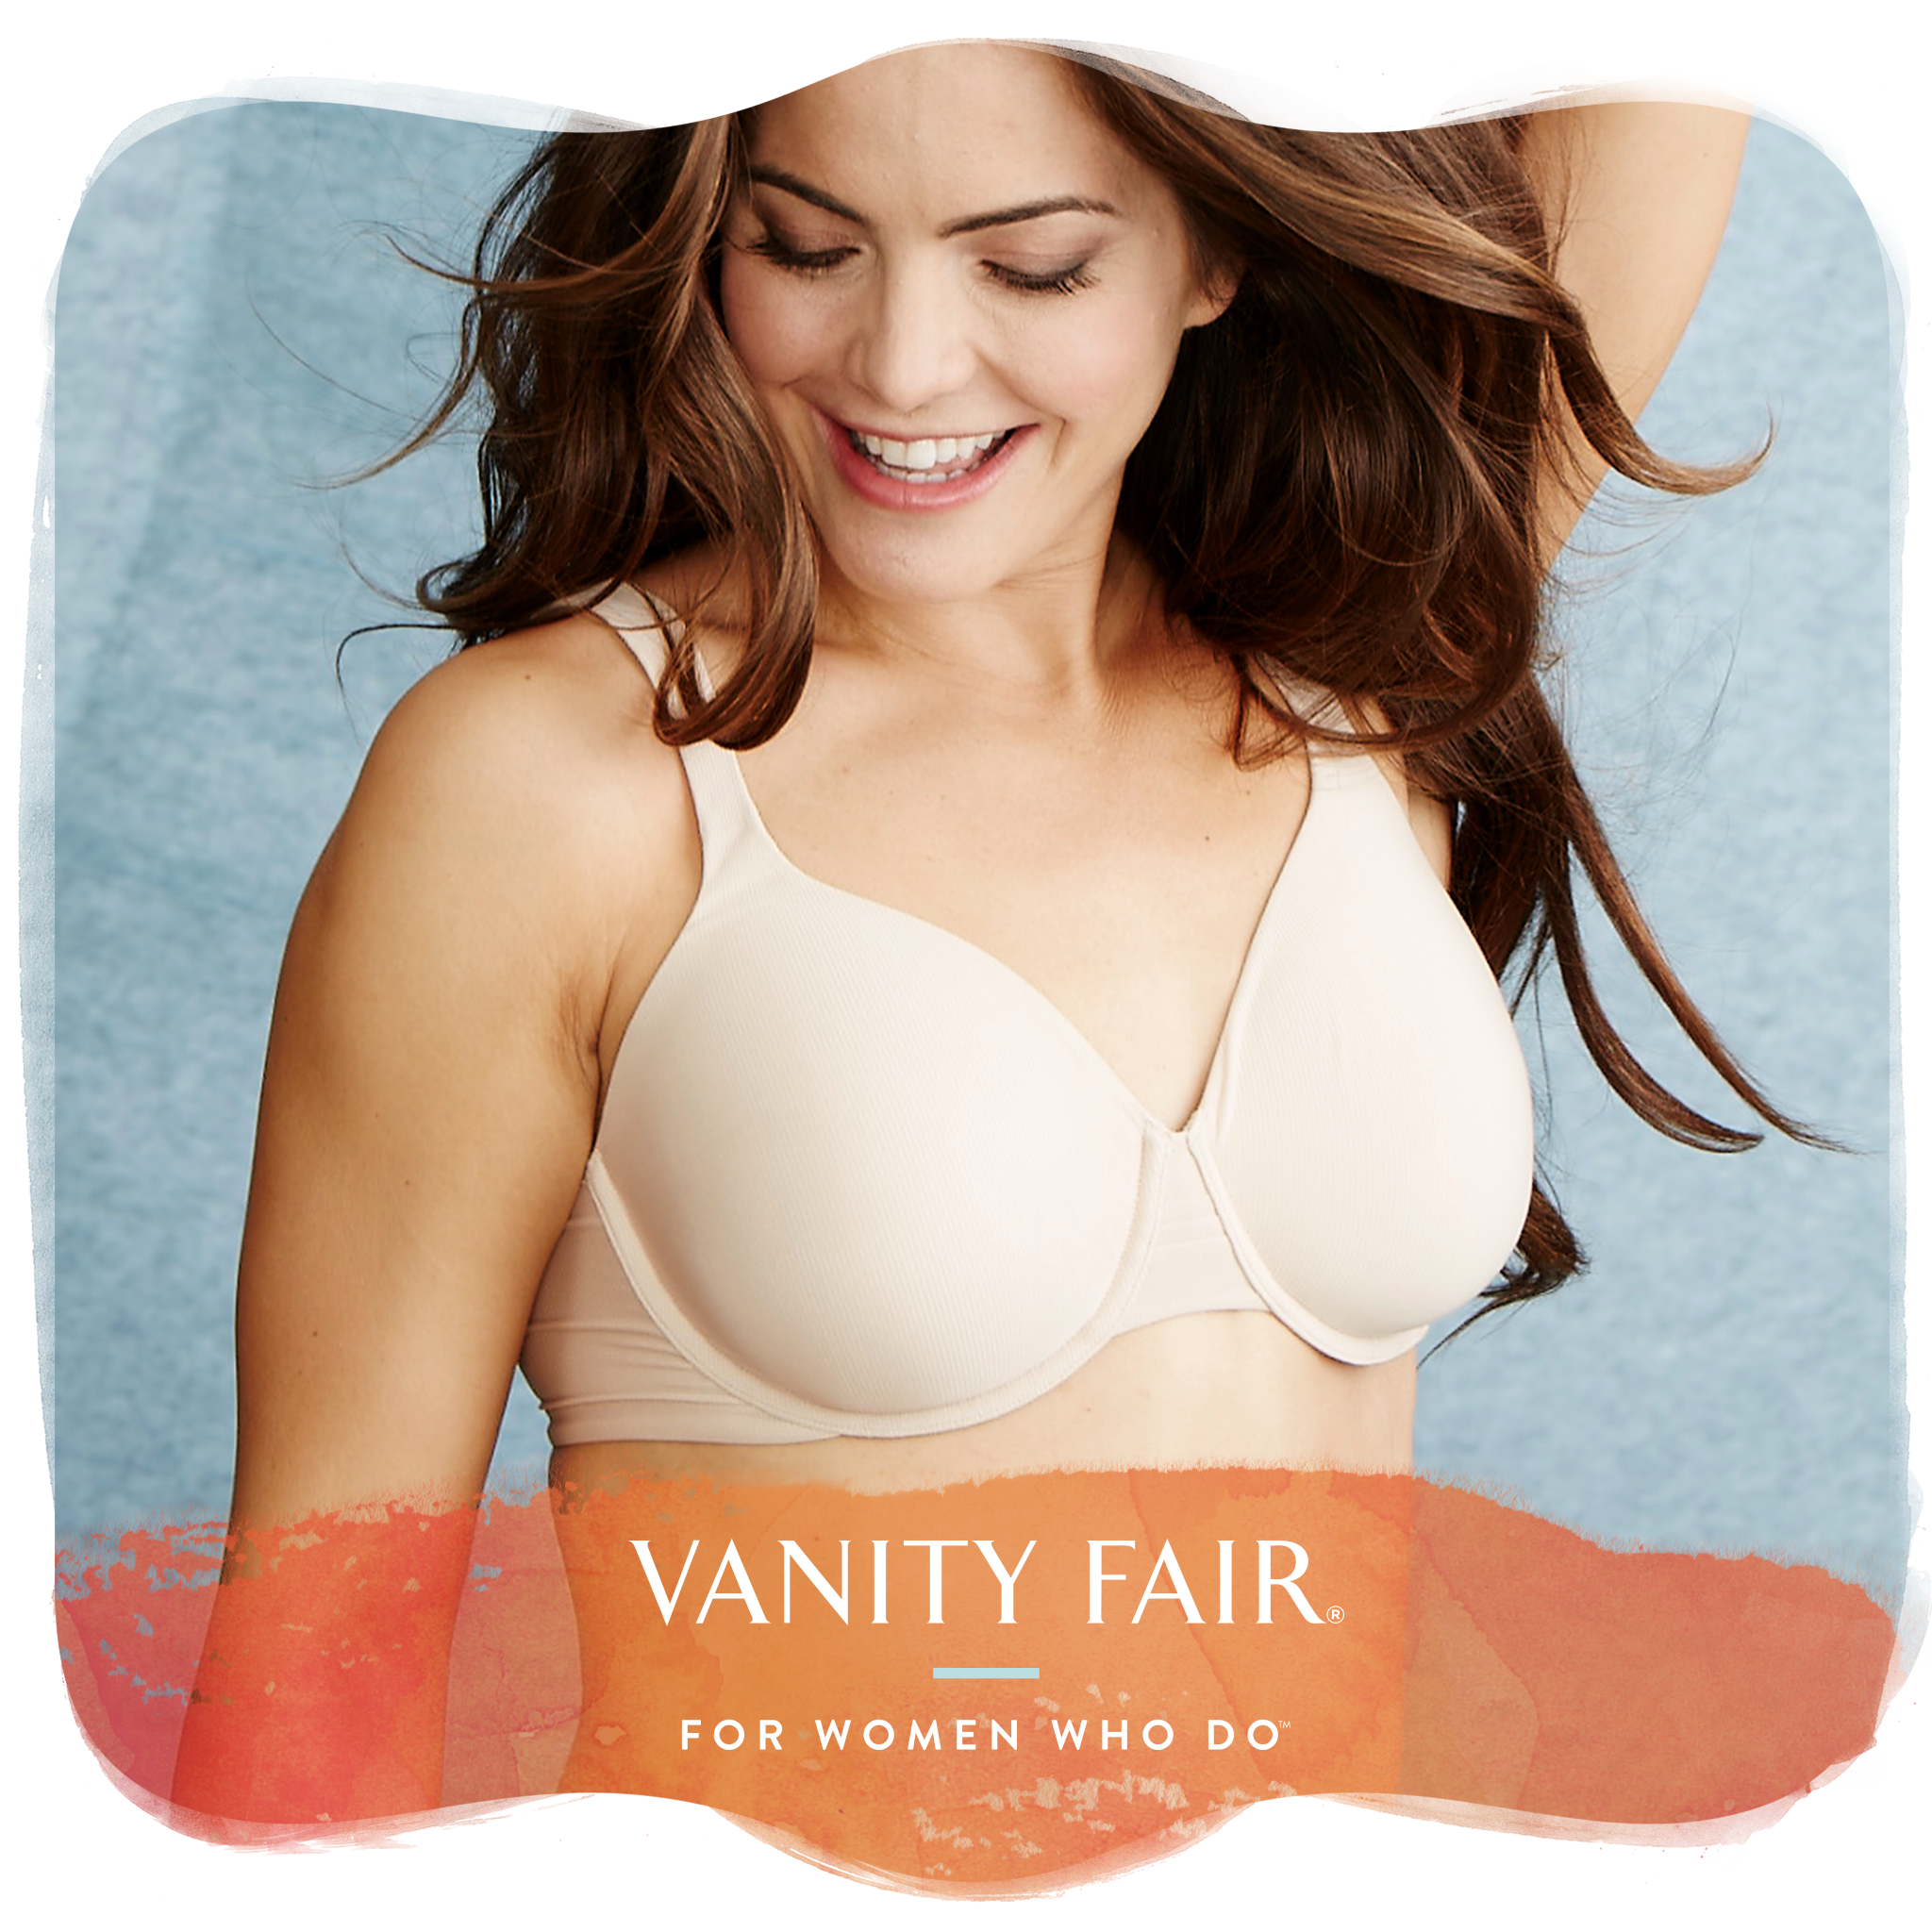 Stay Cool This Season And All Year Round In Our Cooling Touch Bra